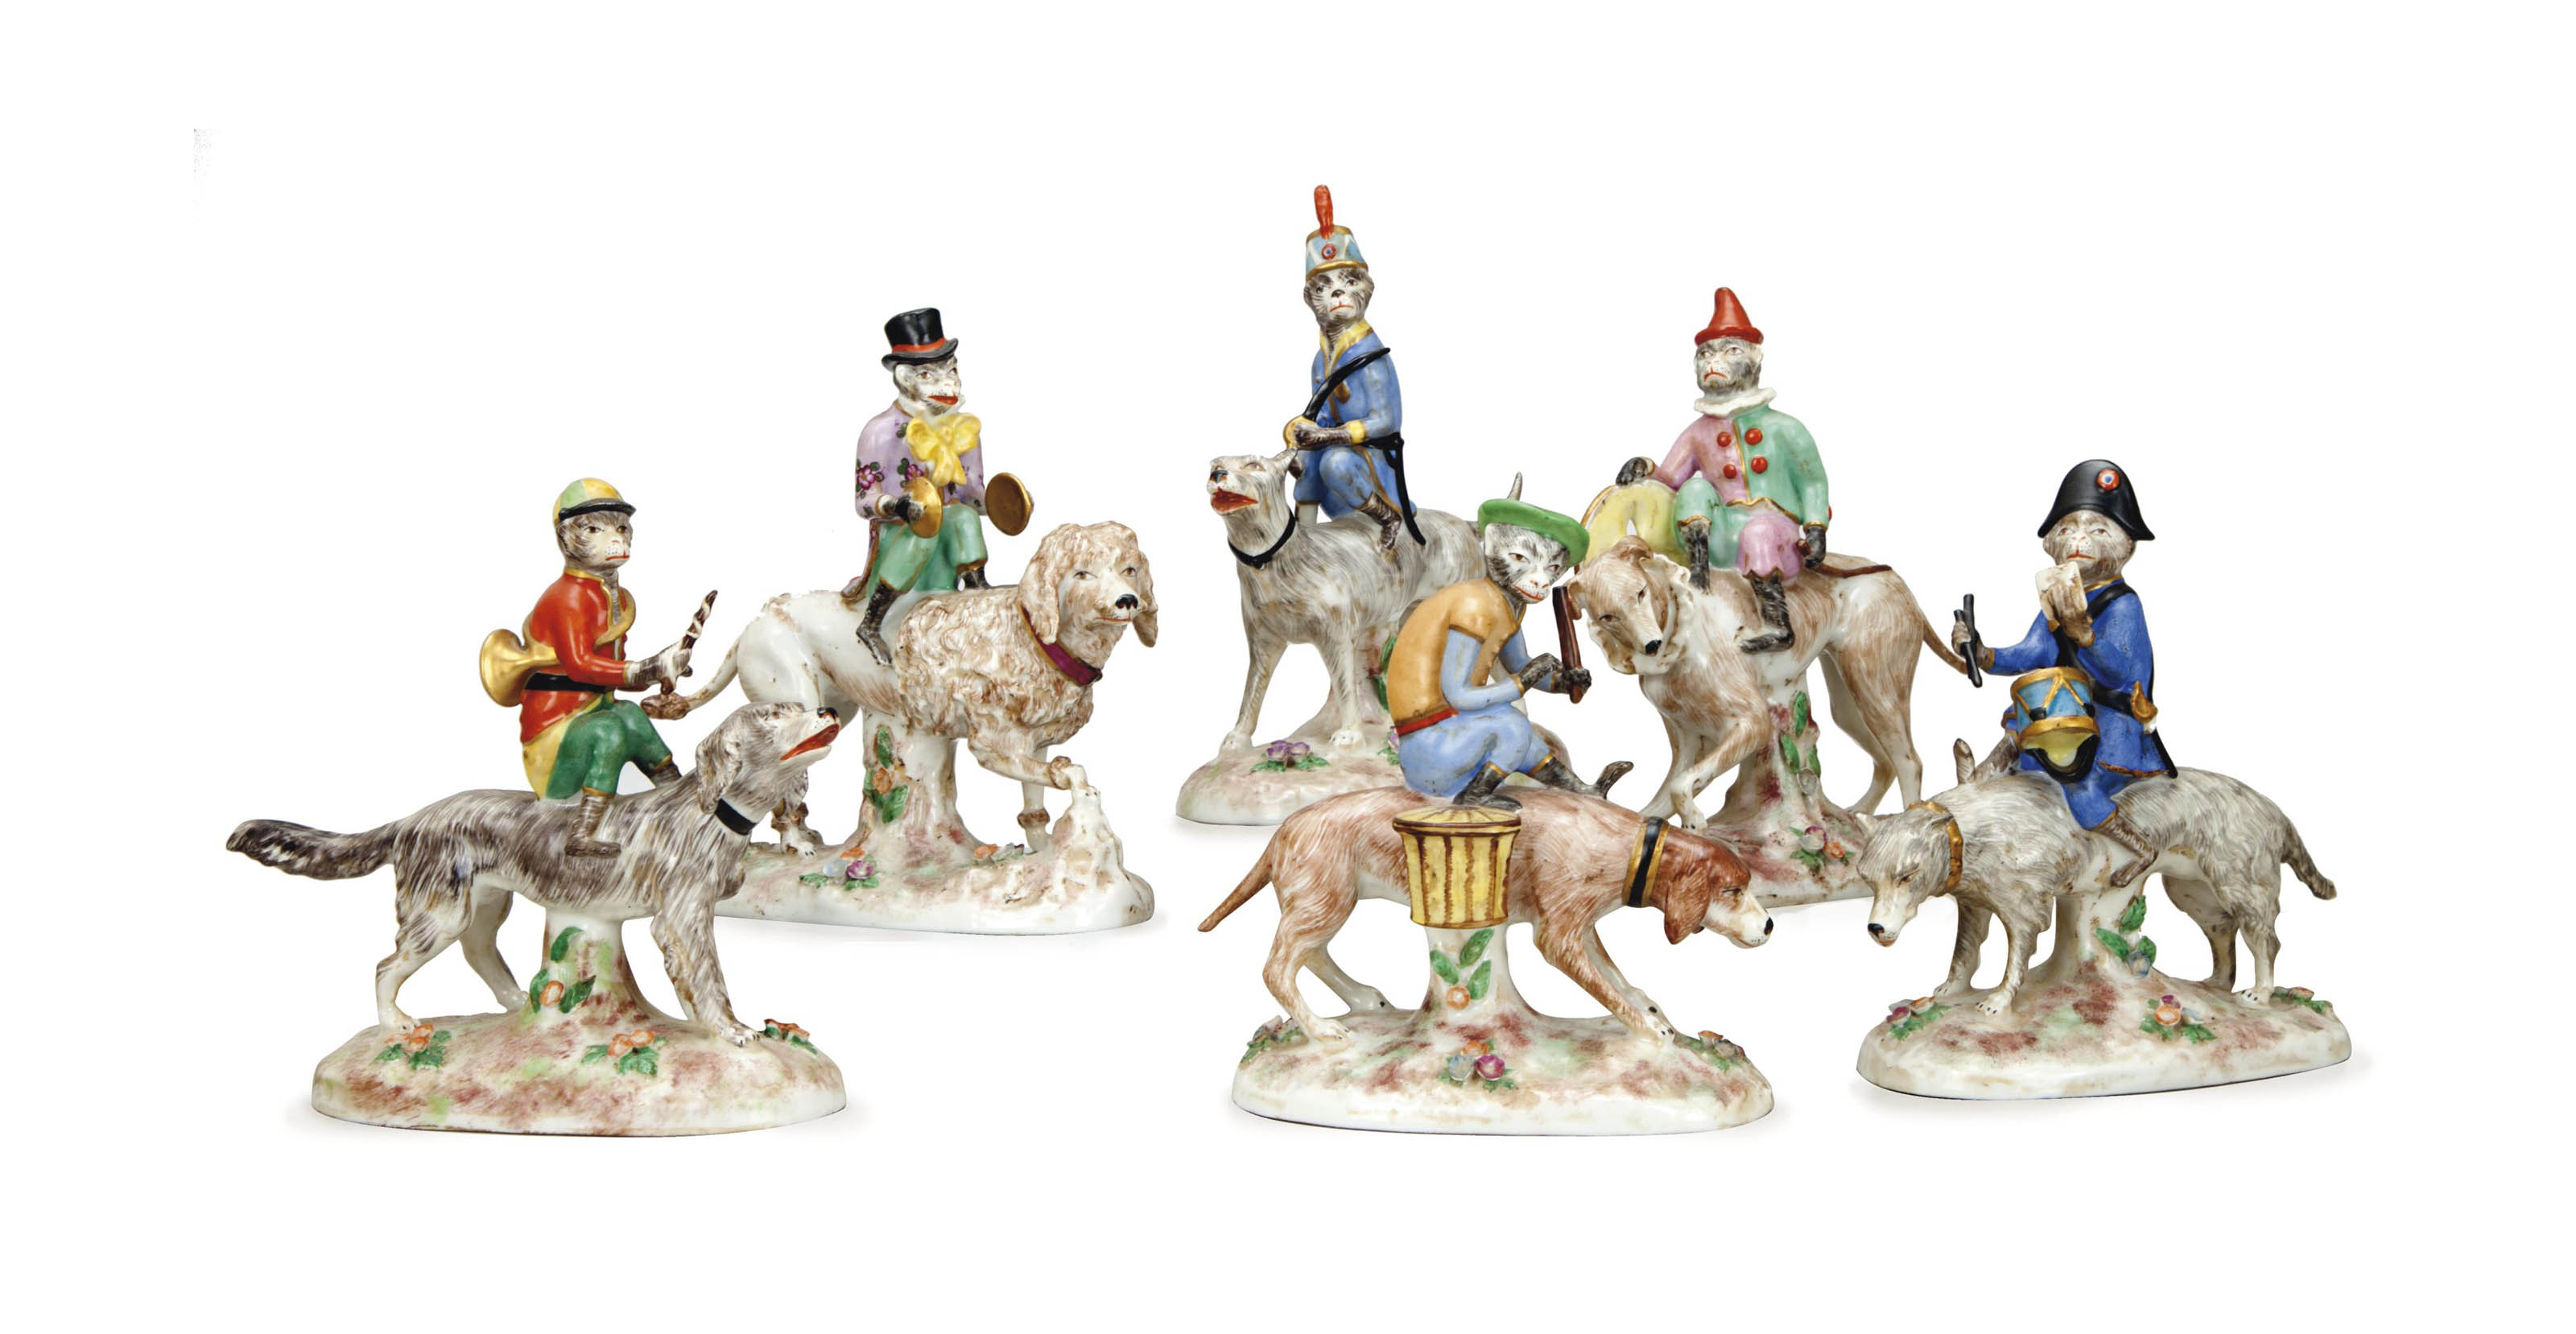 SIX CONTINENTAL PORCELAIN FIGU